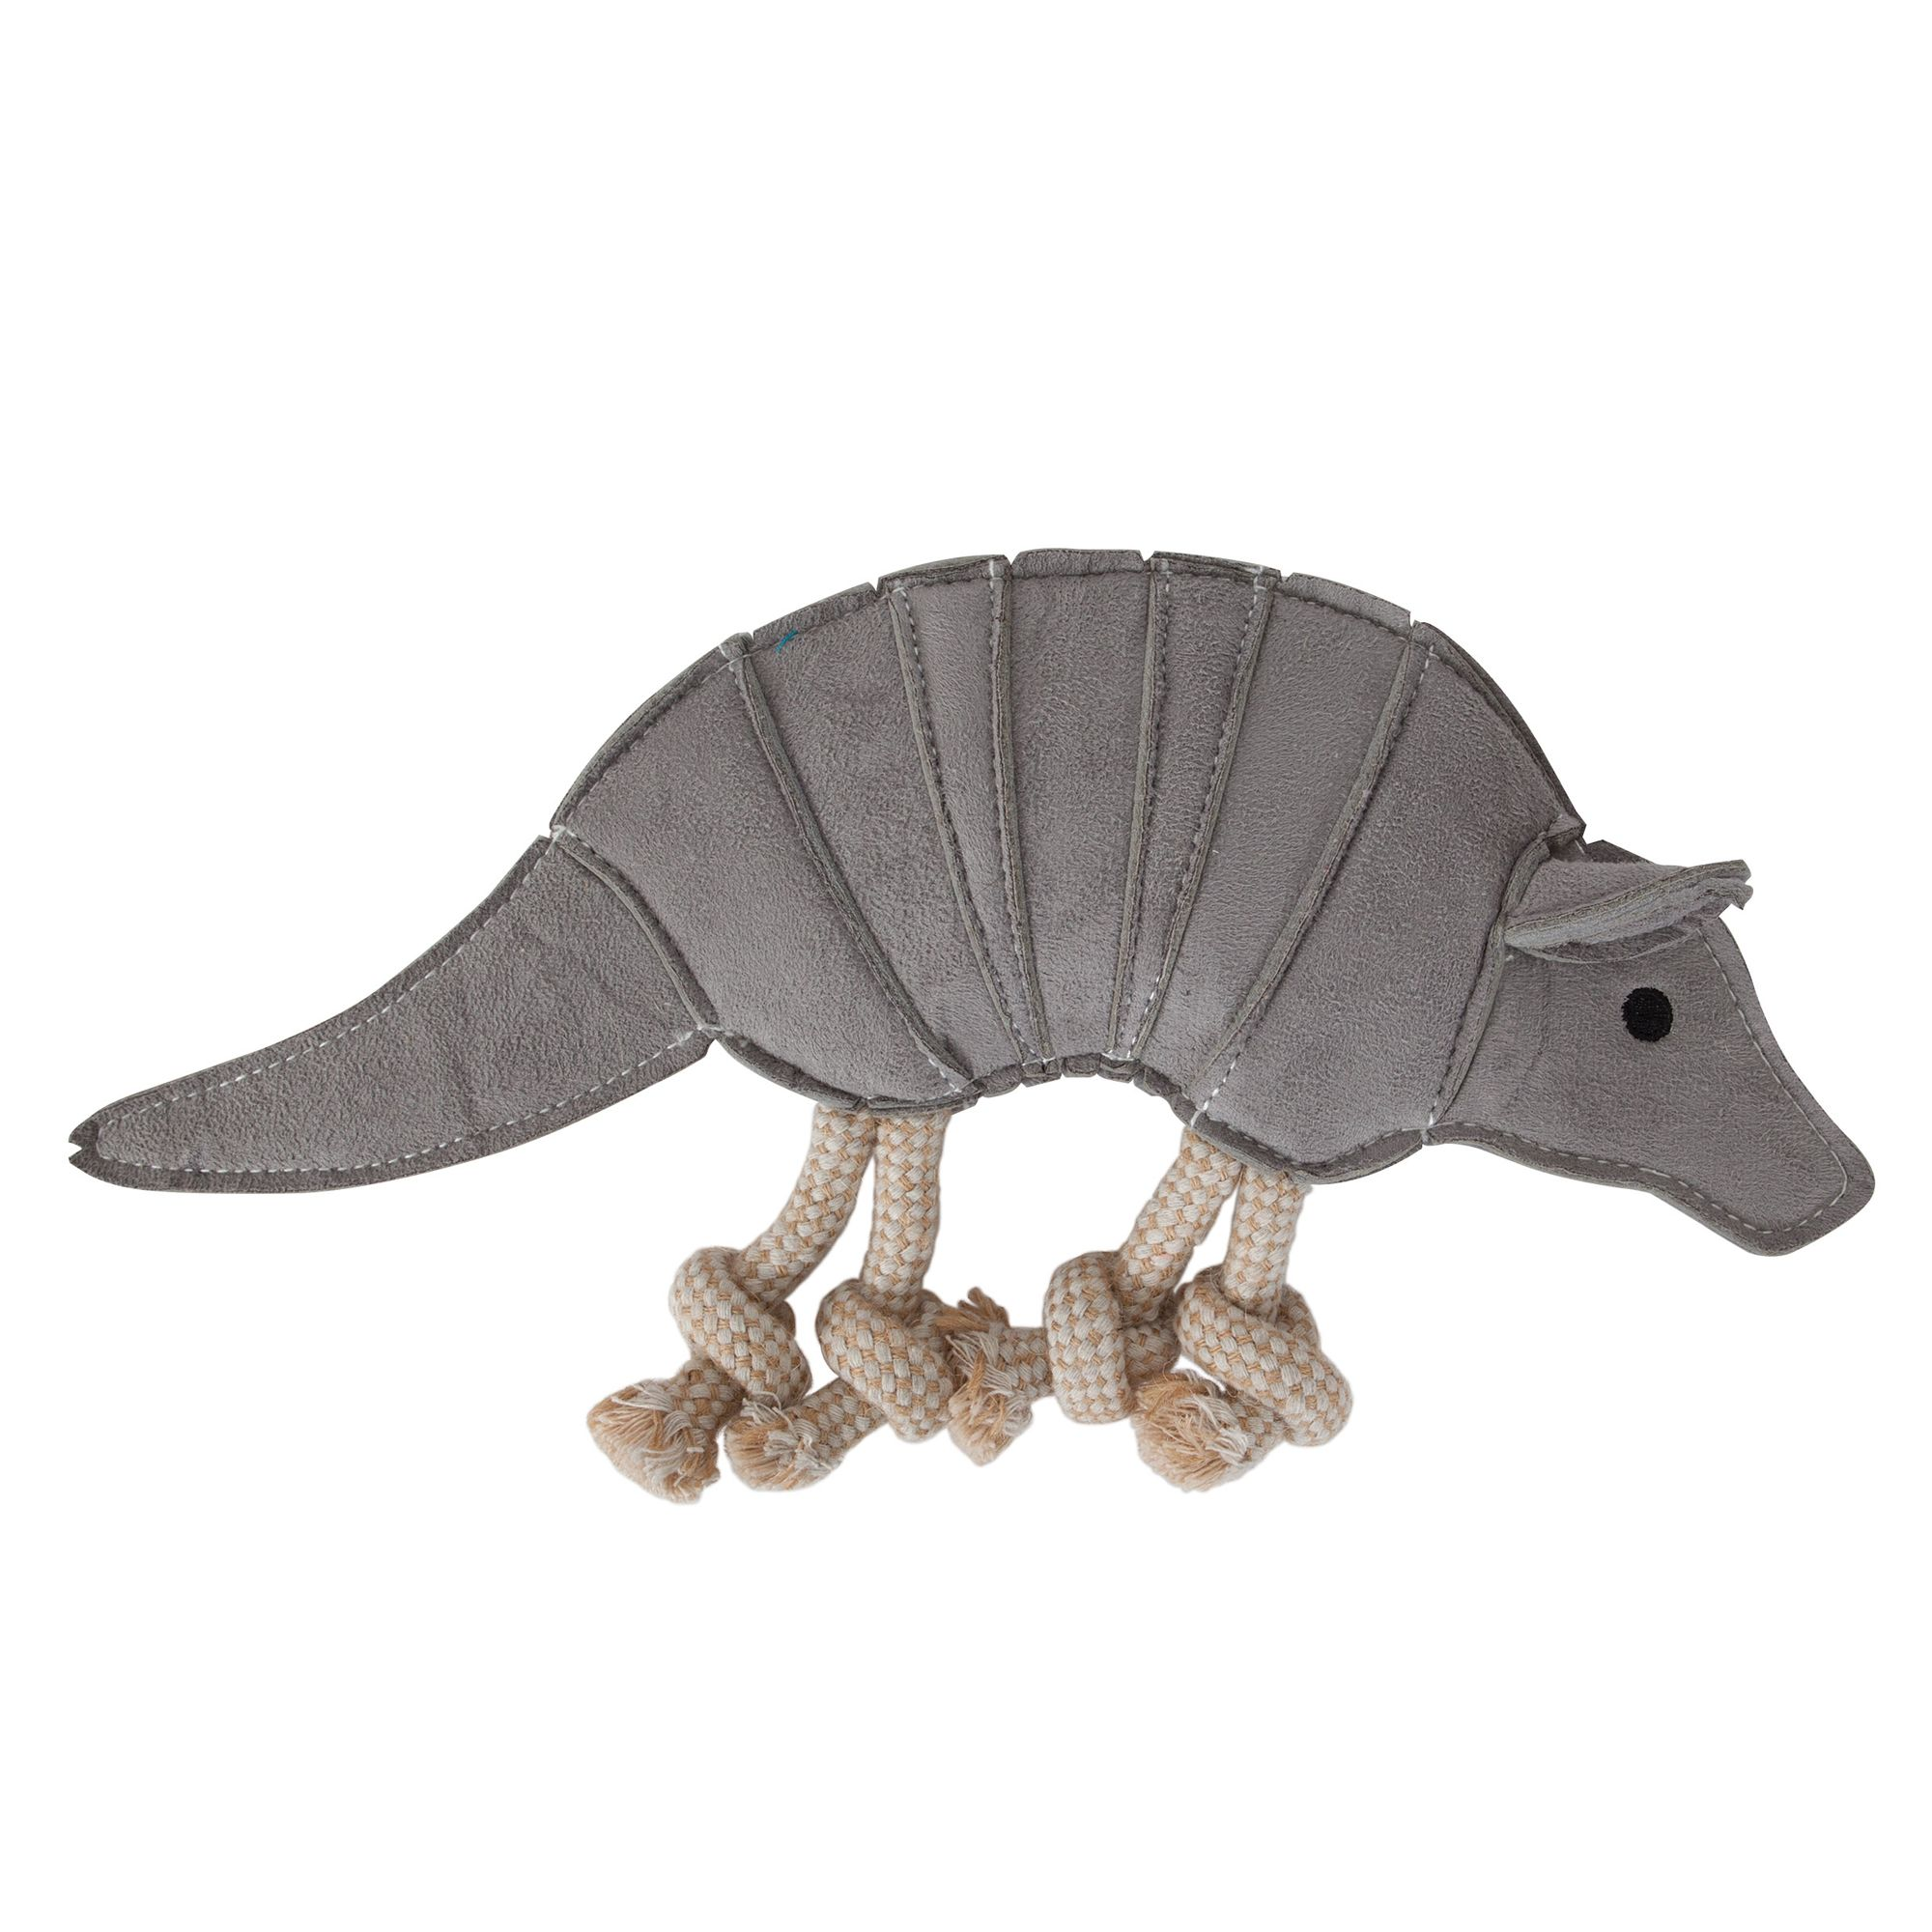 Muttnation Faux Suede Armadillo Dog Toy Mutt Nation